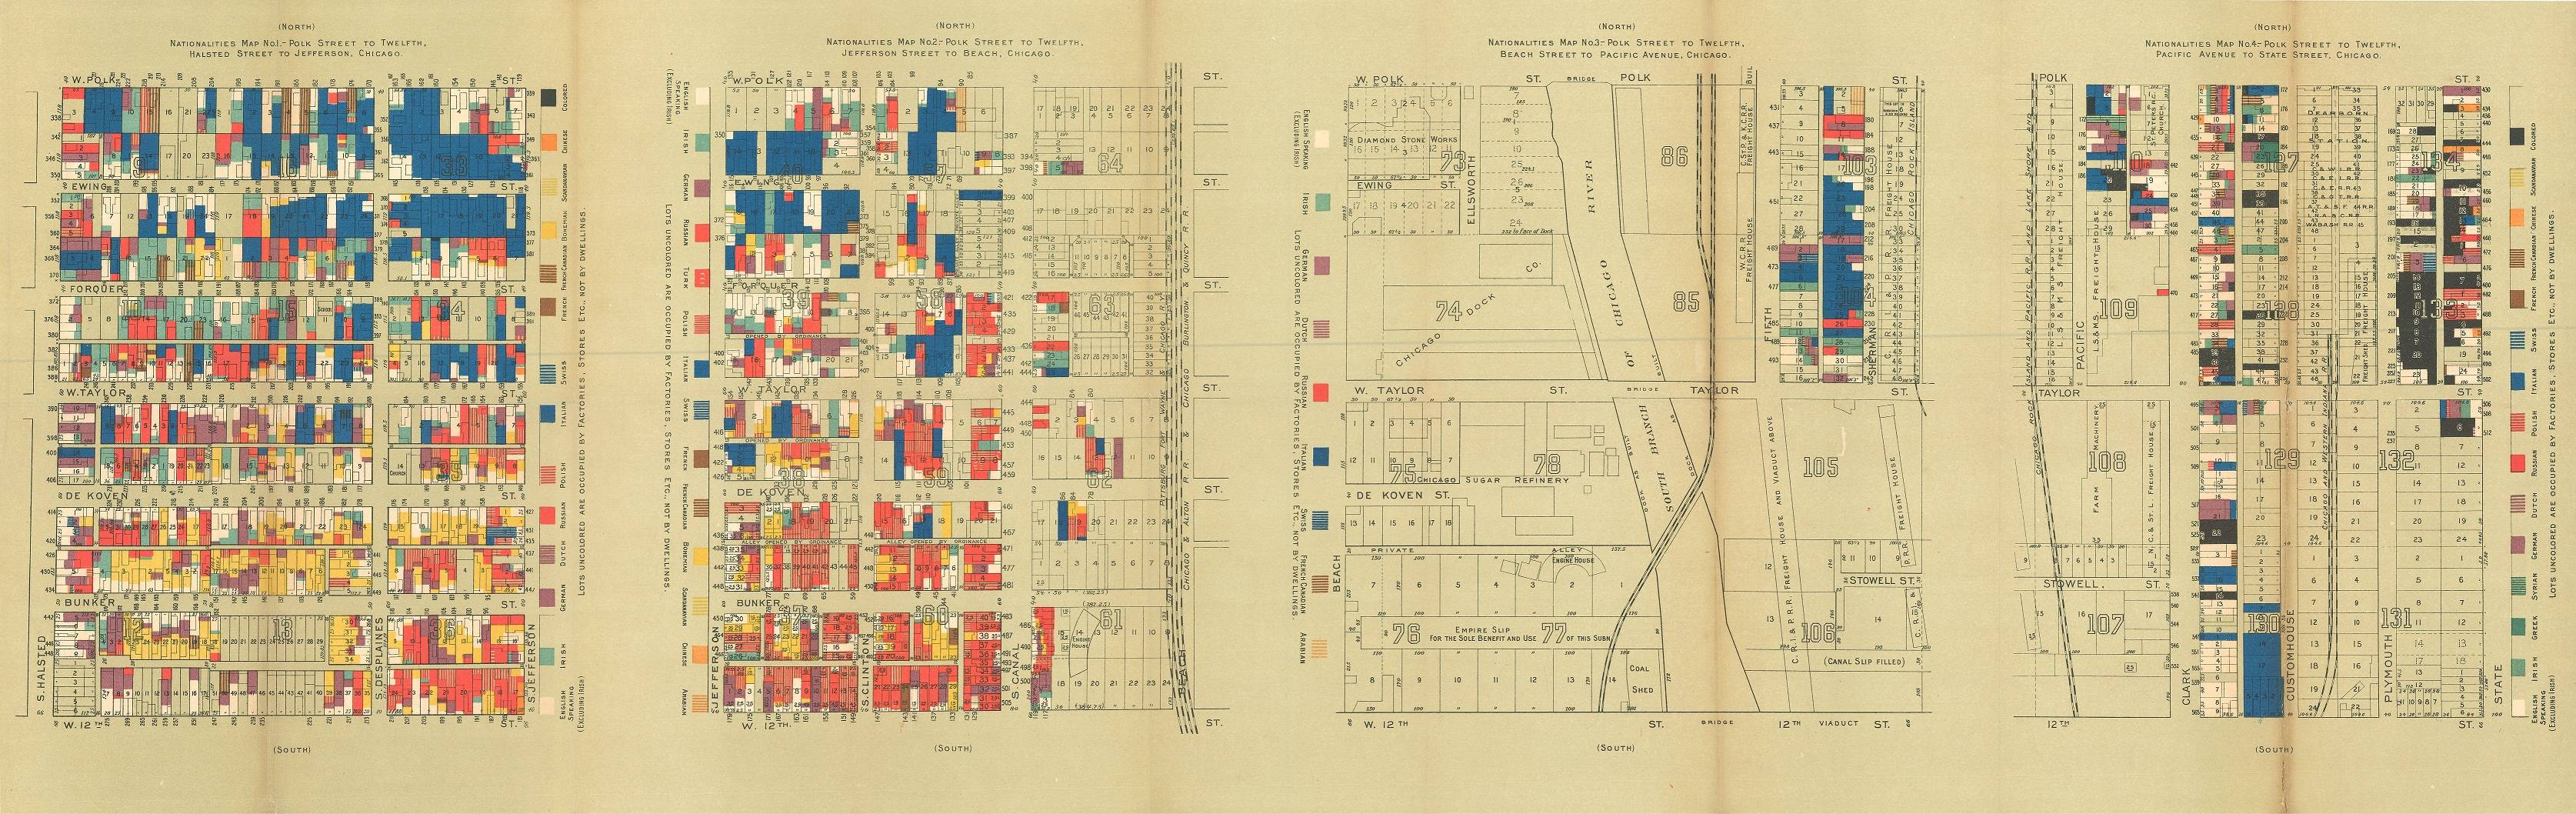 Chicago Wage Map from the Hull House Maps and Papers